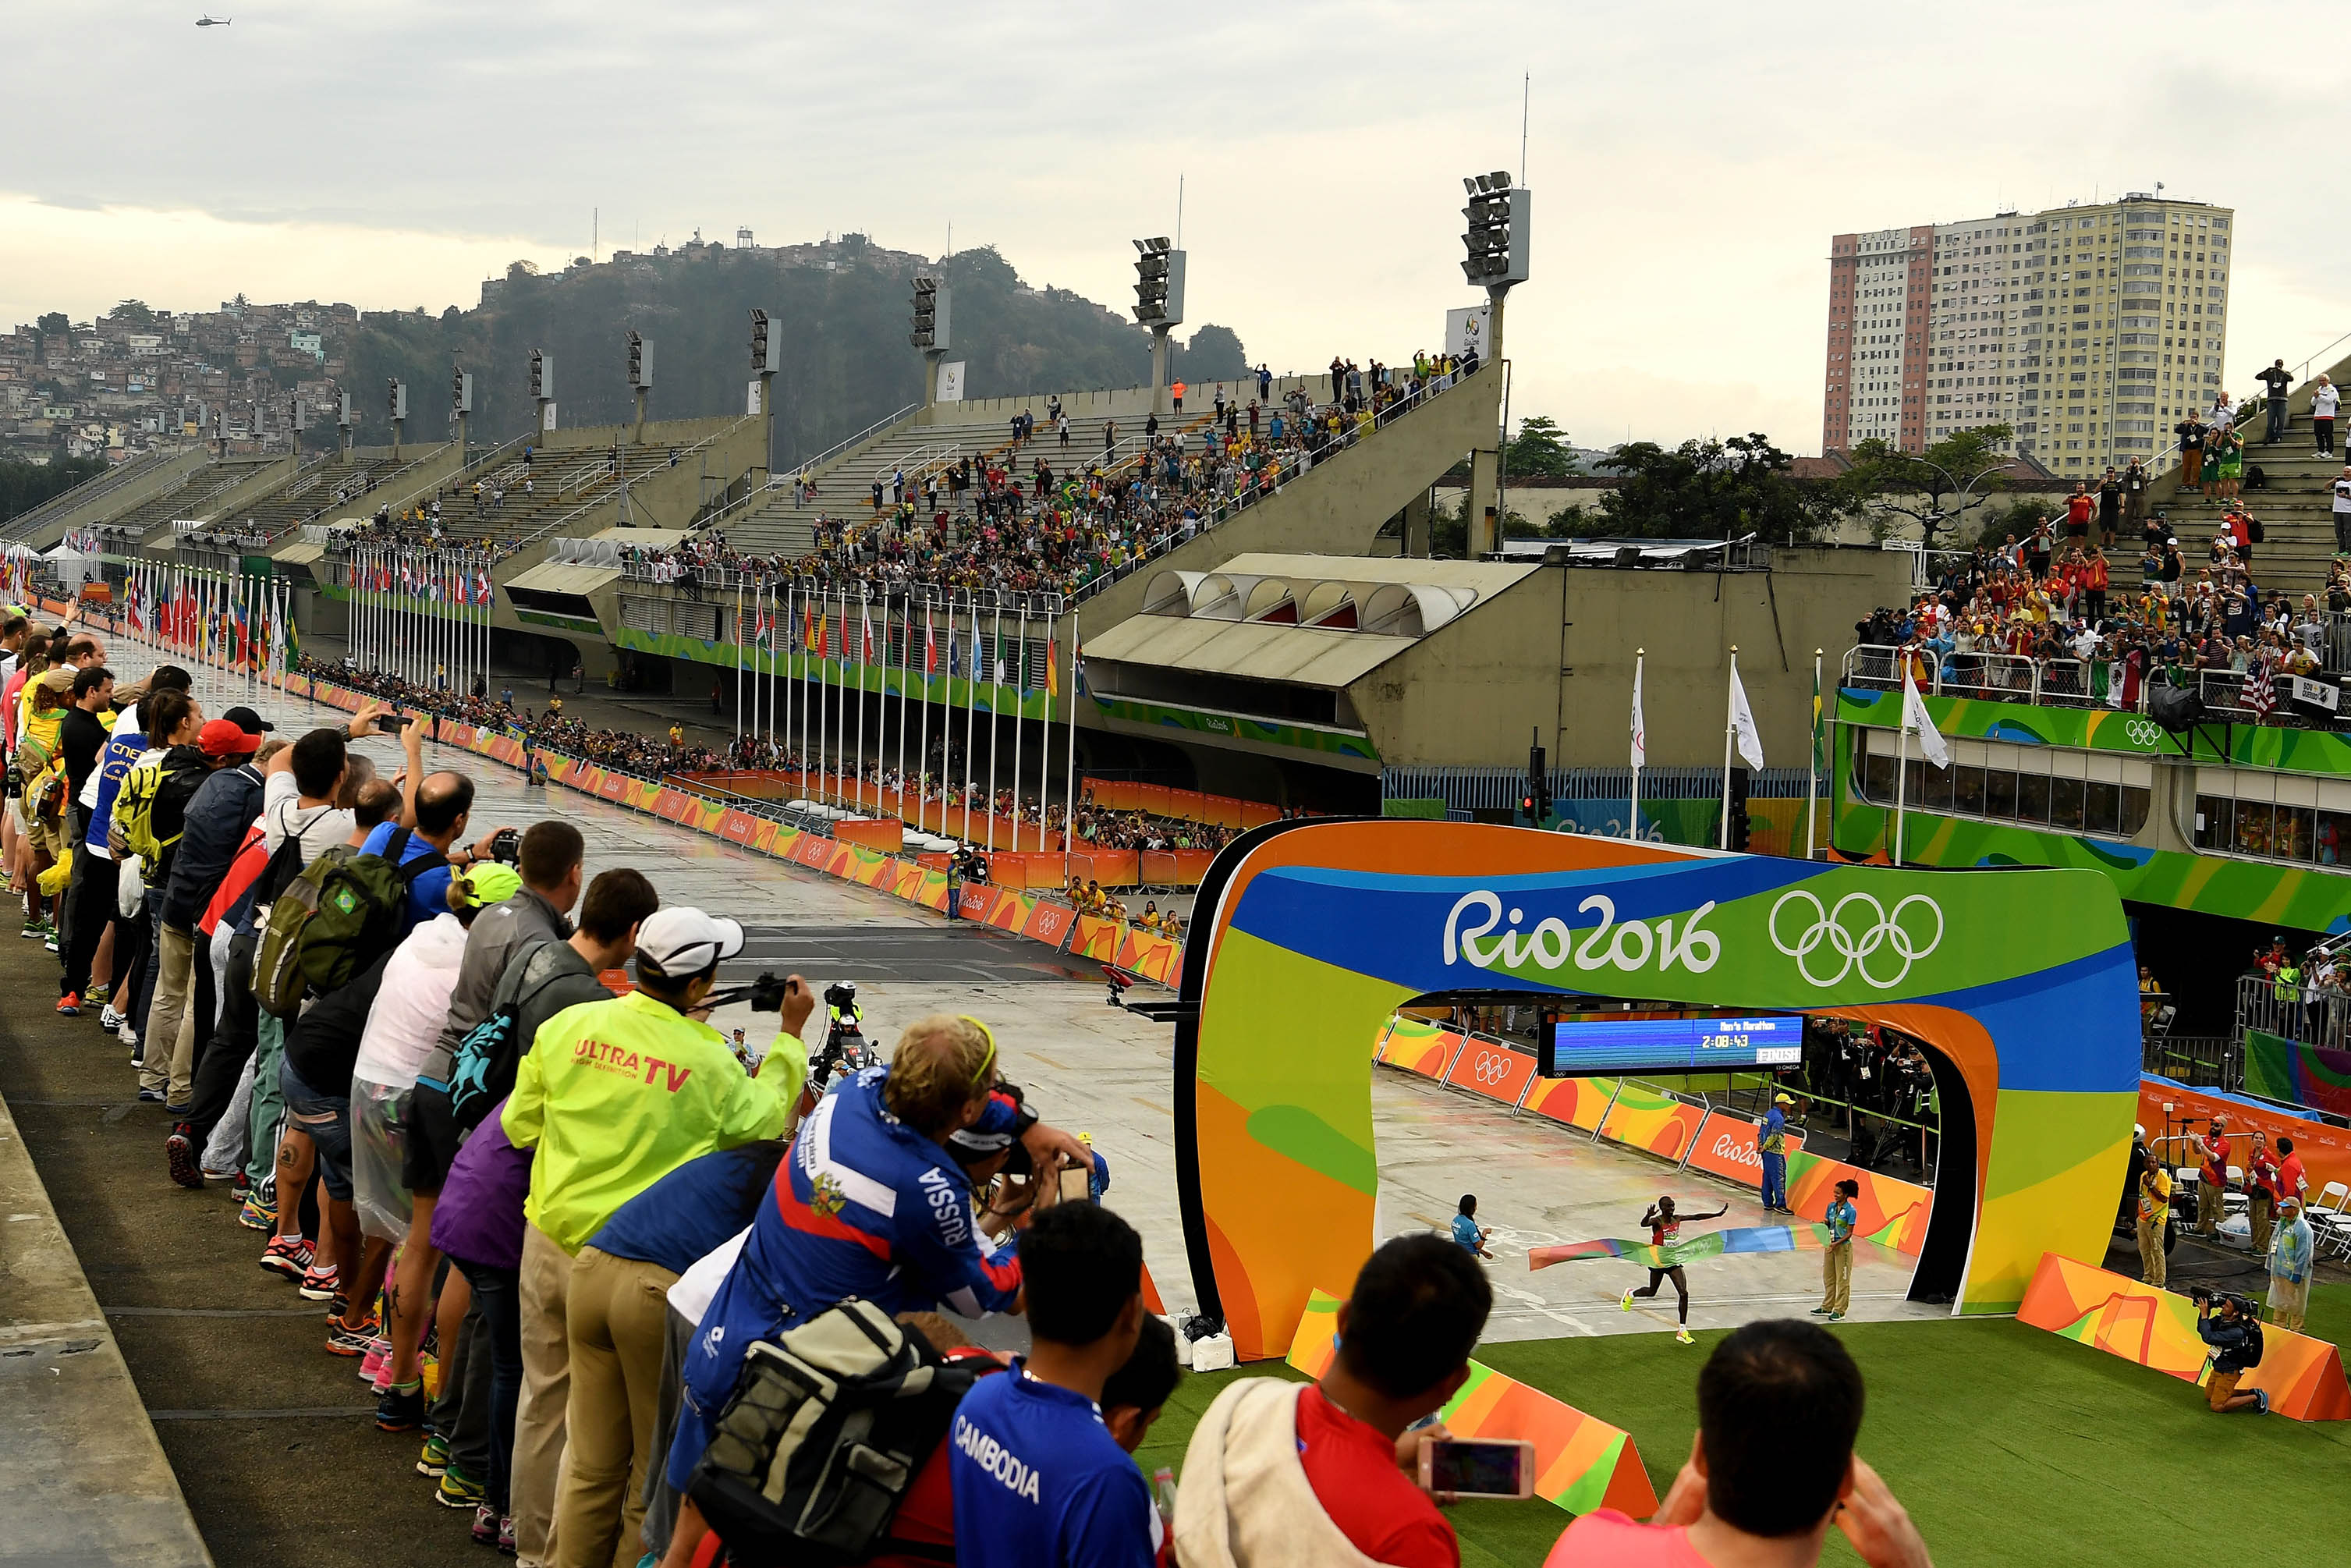 21 August 2016: Spectators watching as Kenyan runner Eliud Kipchoge crosses the line to win gold in the men's marathon at the 2016 Olympic Games at Sambódromo in Rio de Janeiro, Brazil. (Photograph by Quinn Rooney/Getty Images)